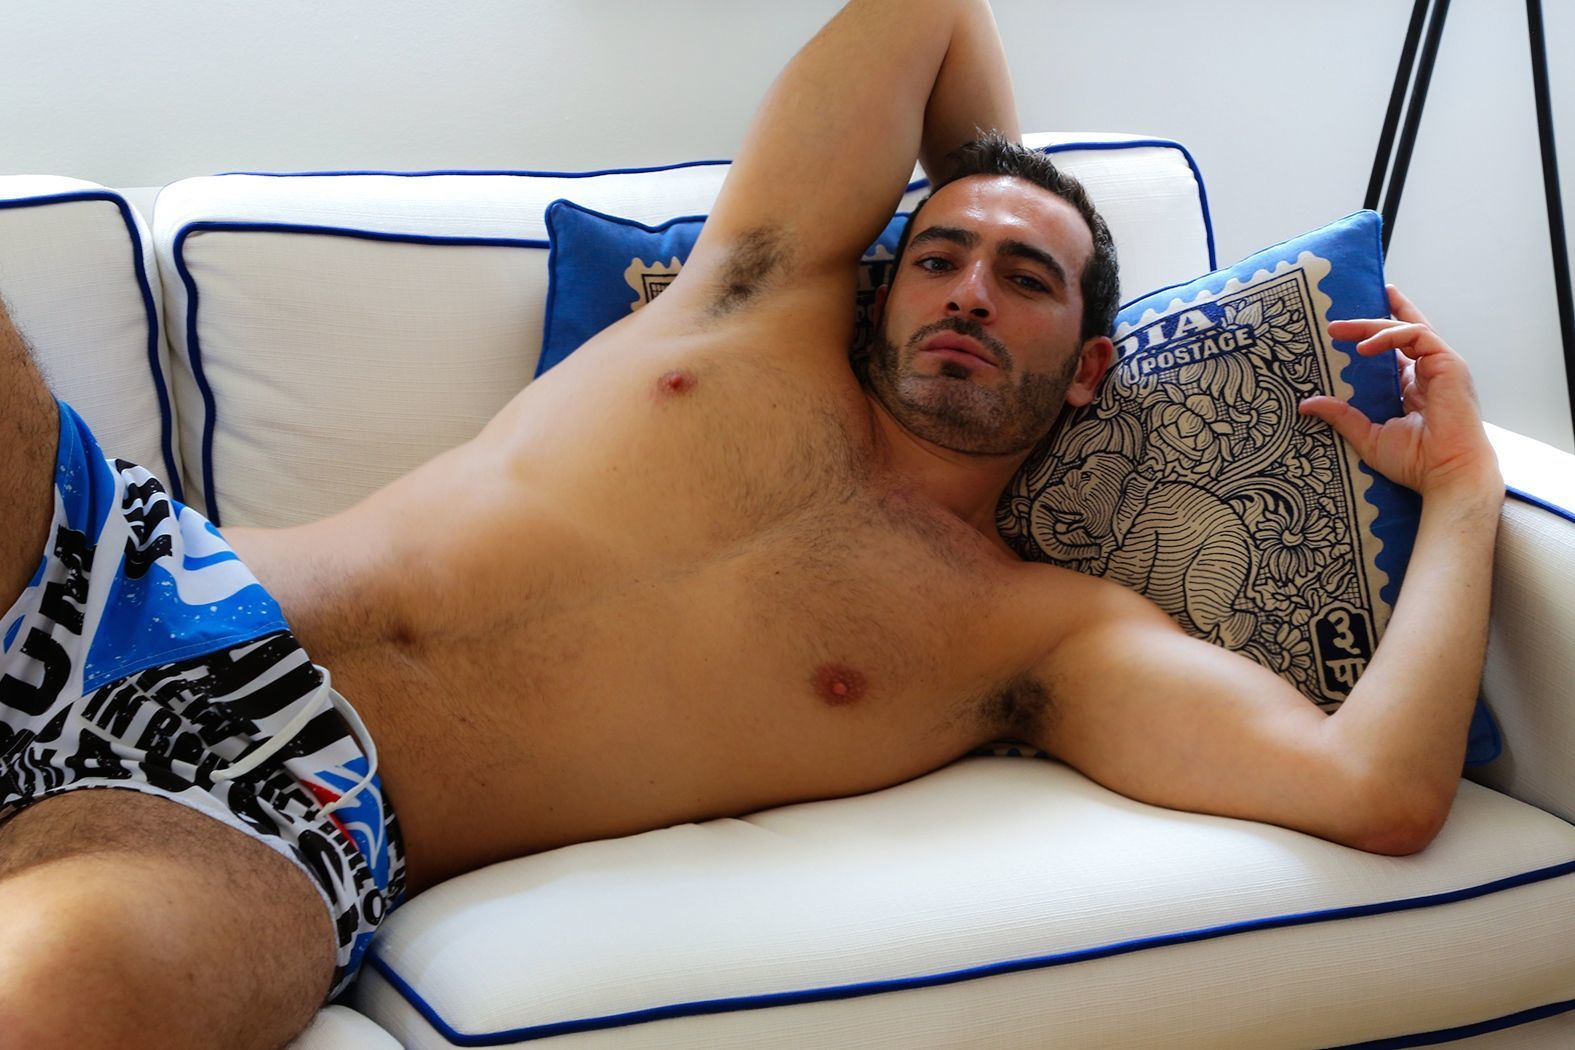 french gay video escort soumise paris